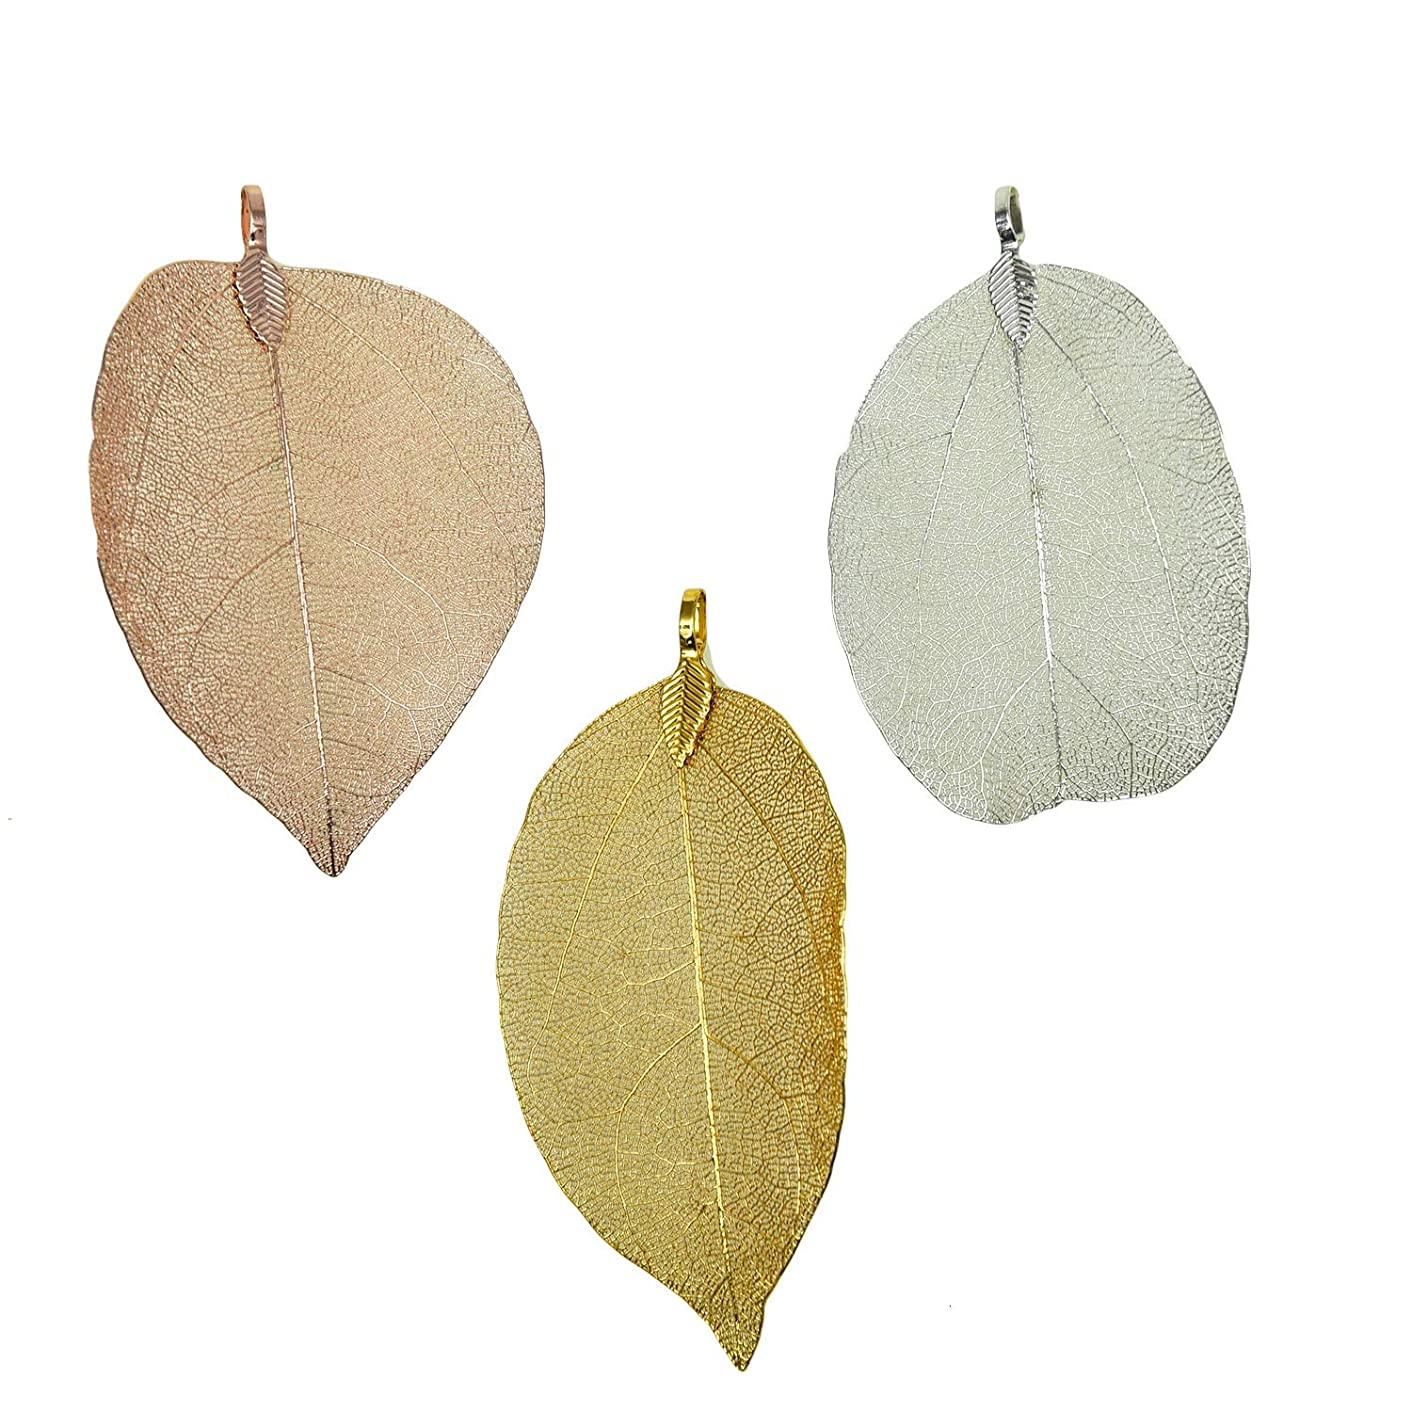 Monrocco 6Pcs Mixed Color Natural Leaf Pendant,Filigree Leaf Charm Natural Real Leaf for Jewelry Making